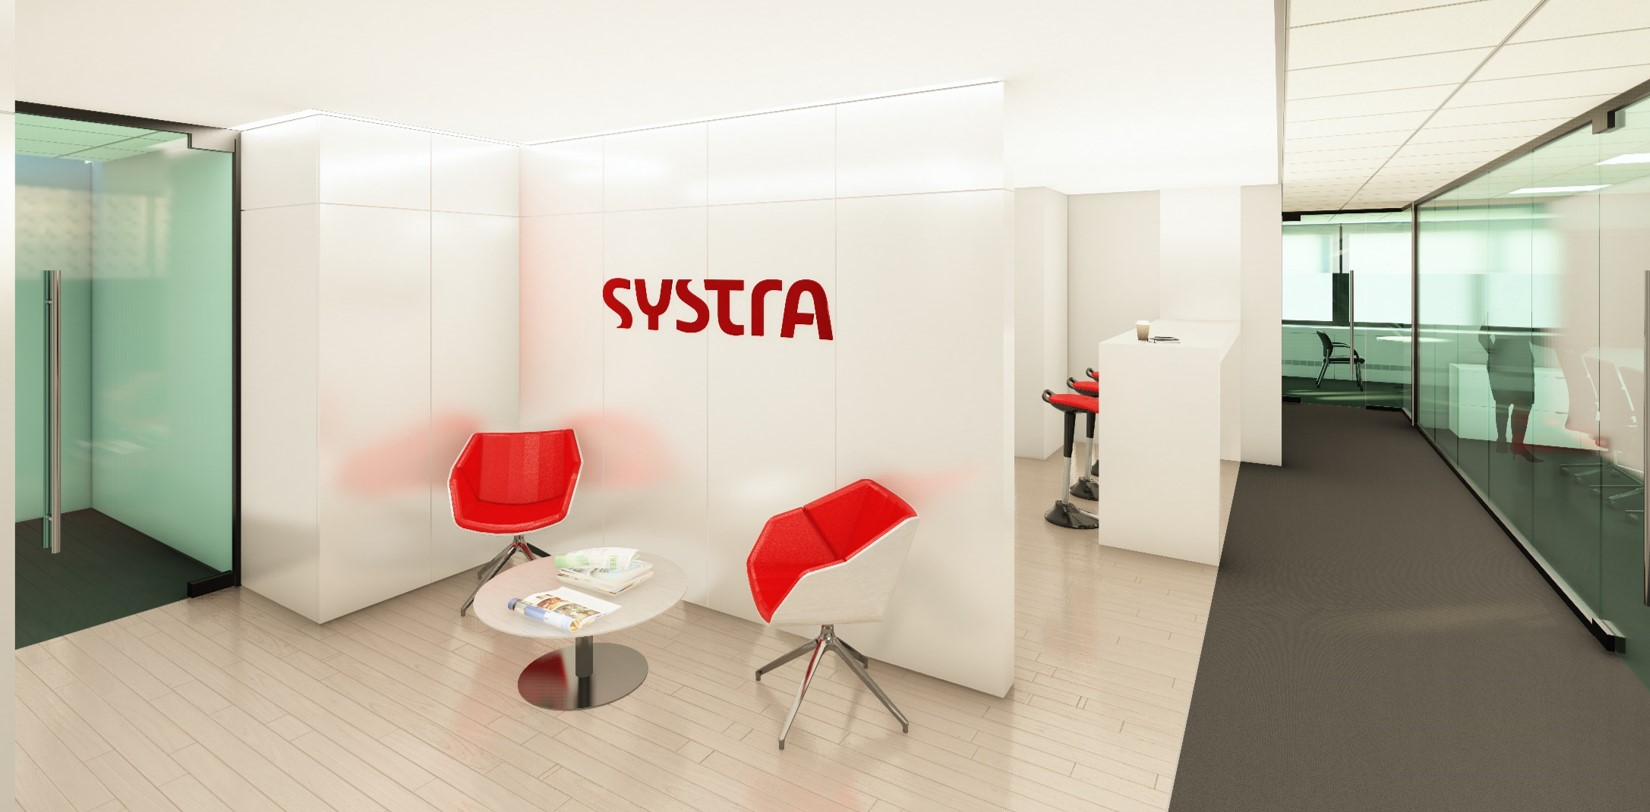 SYSTRA is Delighted to Announce the Opening of Our New Office in Newark, NJ